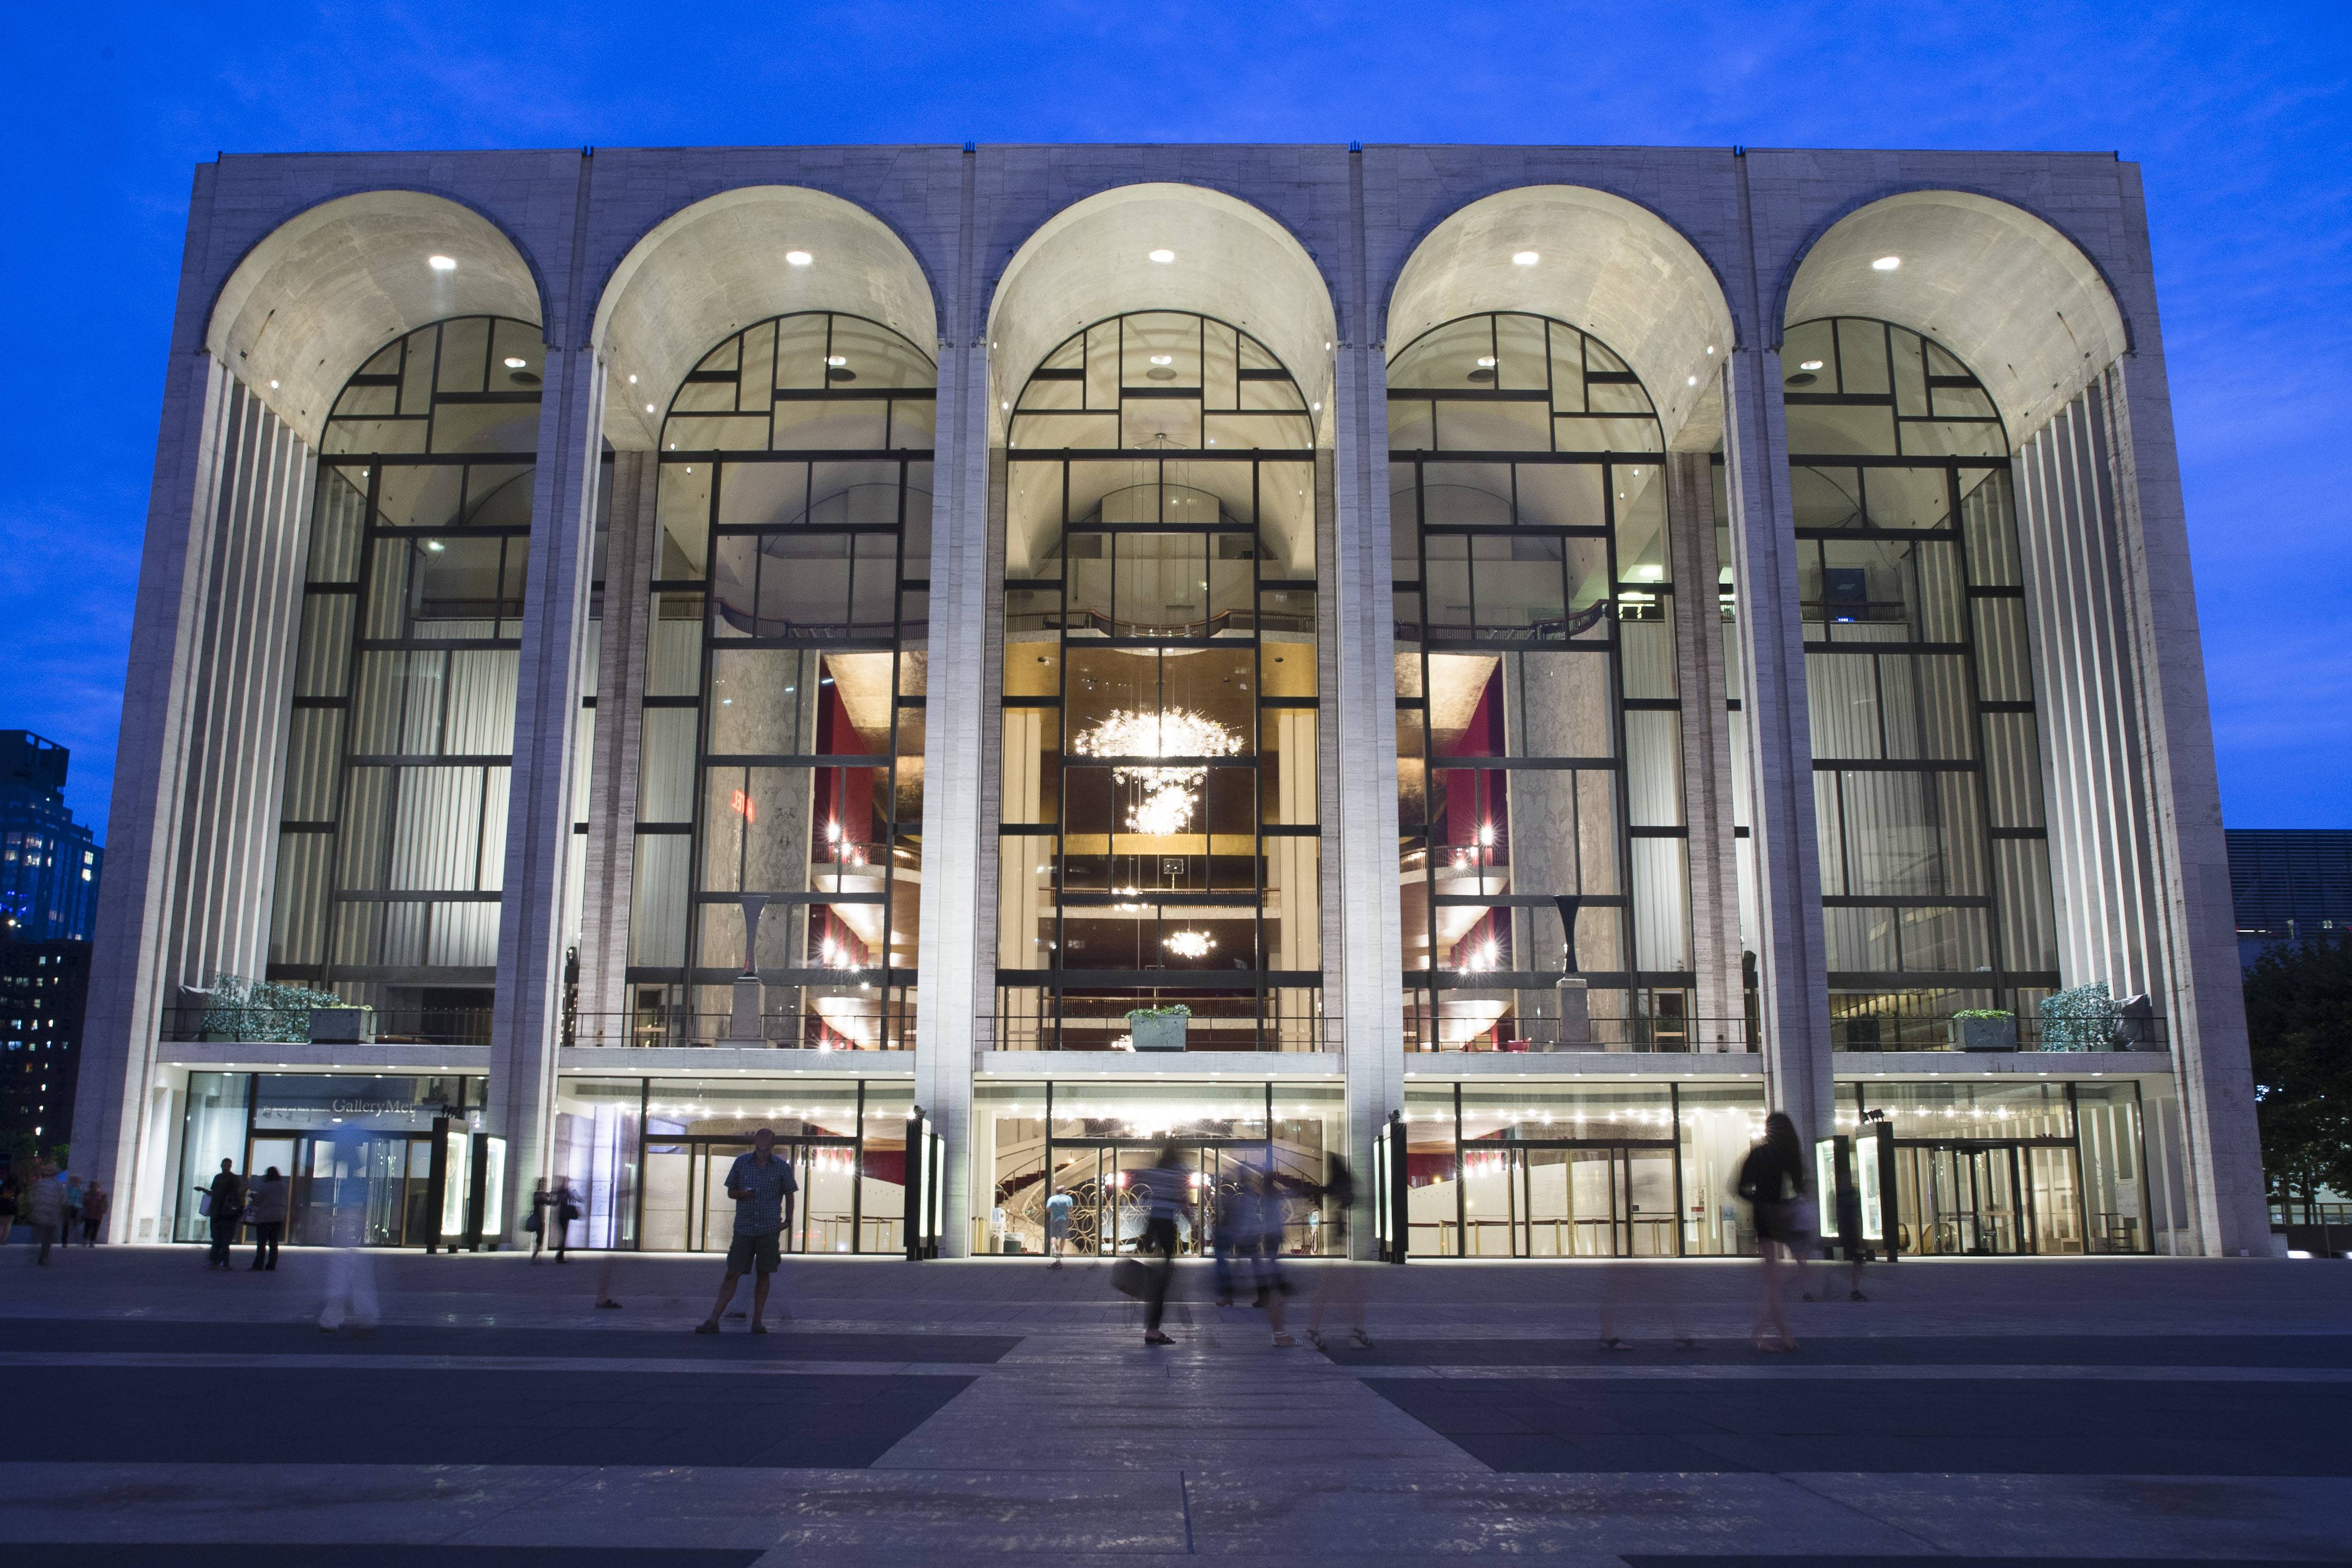 New York's Metropolitan Opera reached tentative labor deals with two of its largest unions early Monday while negotiations continued with 10 more unions in hopes of averting a lockout.